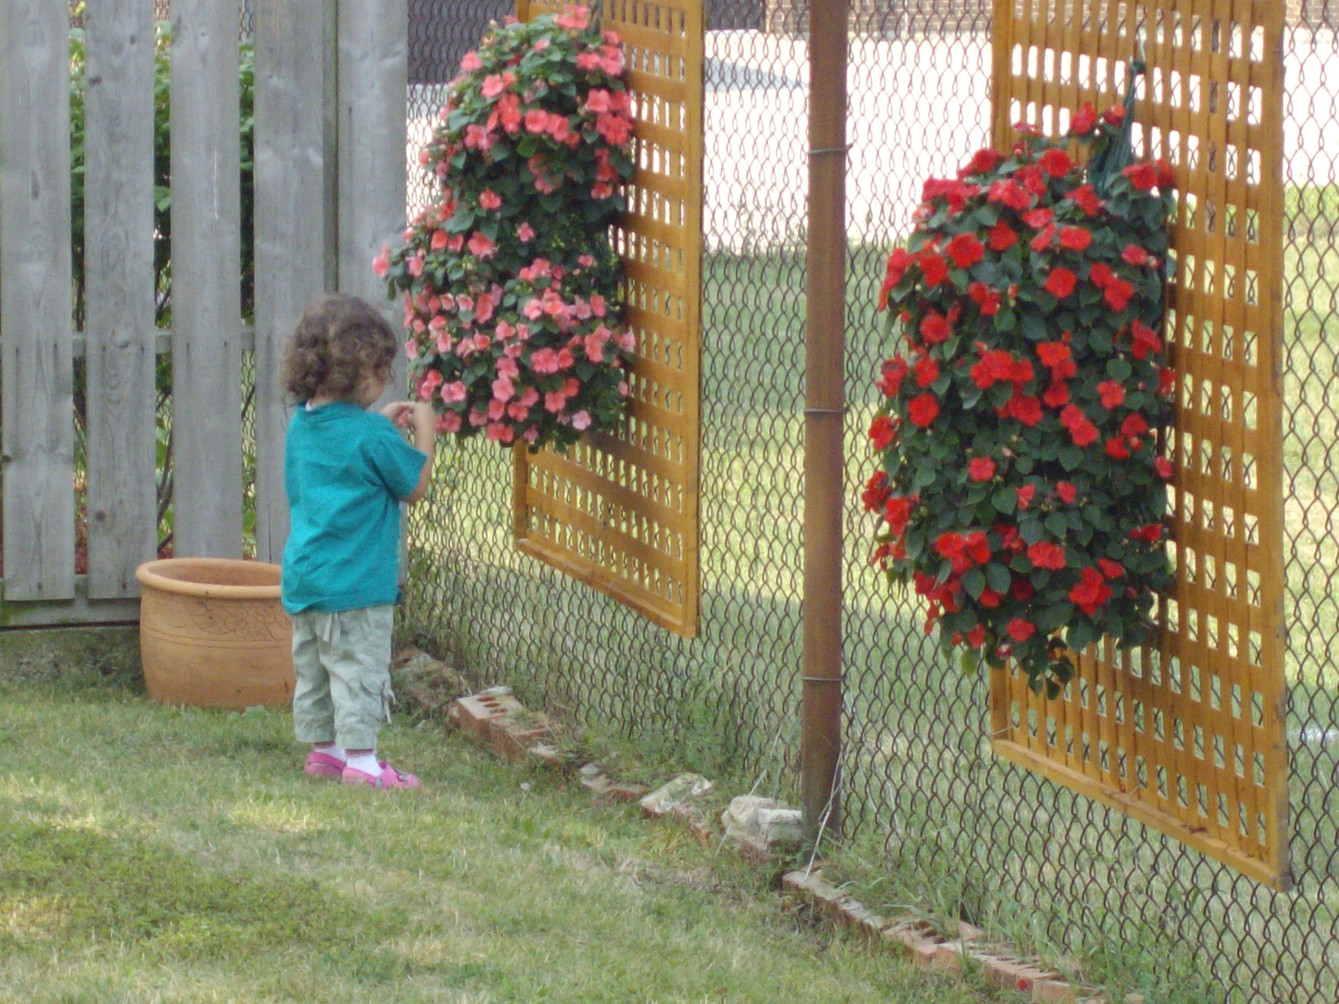 Investigating the impatiens in the backyard